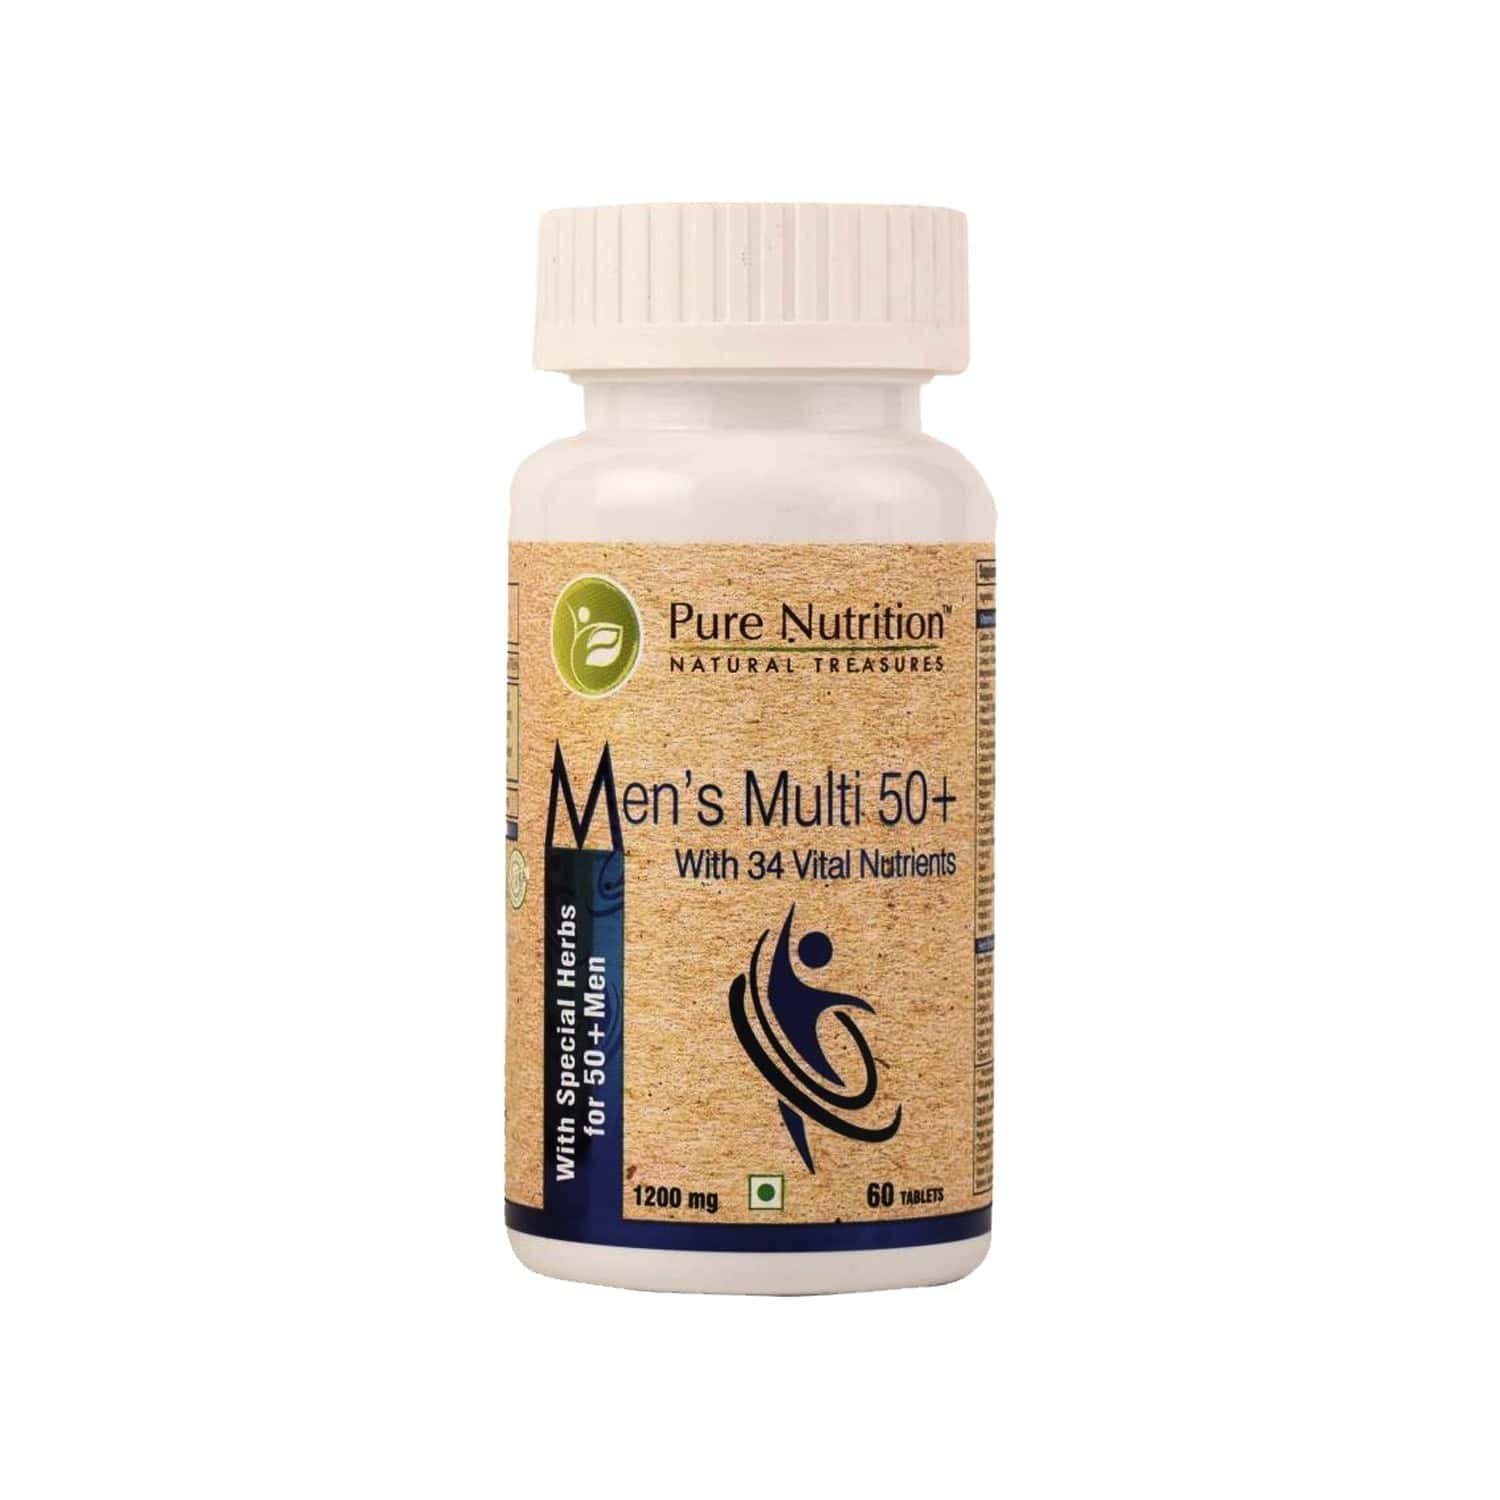 Pure Nutrition Men's Multi 50+ (for Men Approaching Or Past Their 50s) - 60 Tablets